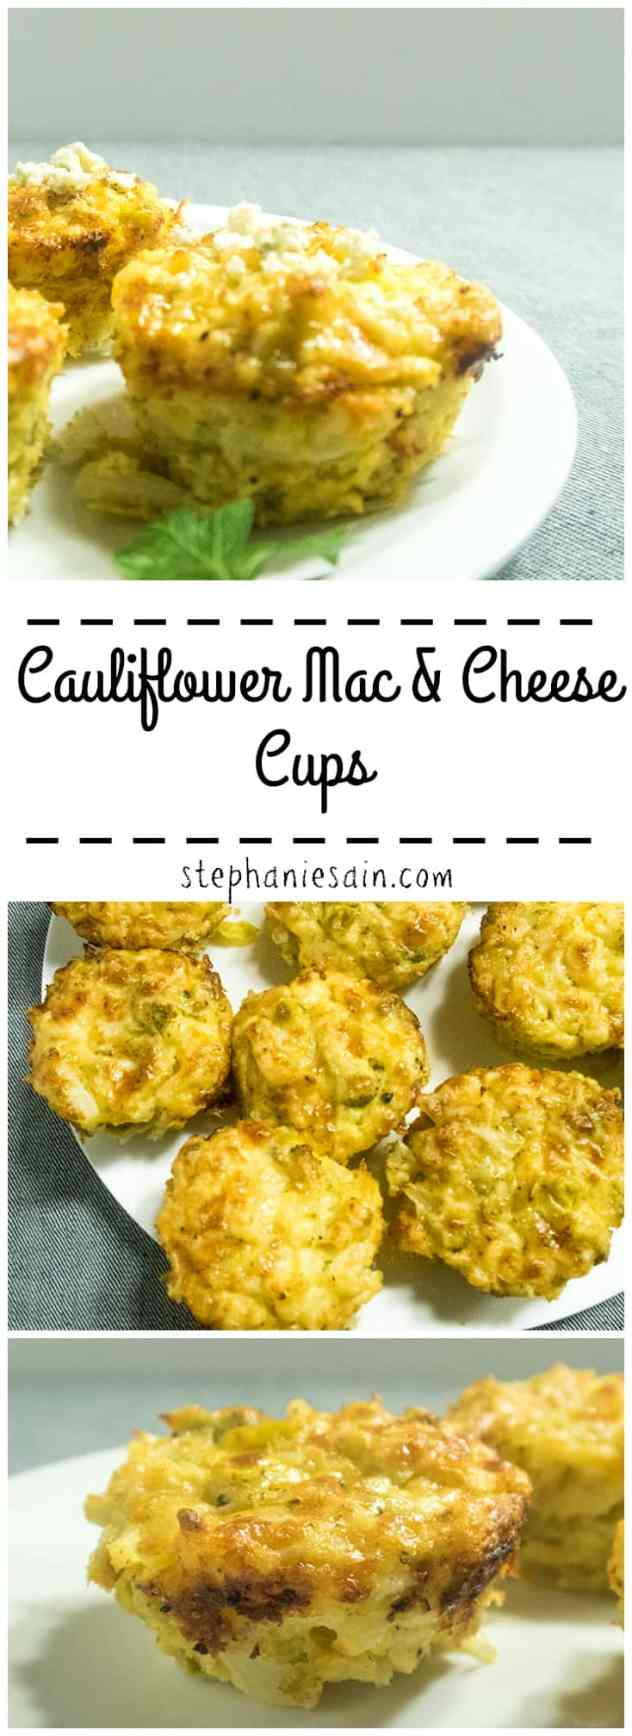 Cauliflower Mac & Cheese Cups are a tasty, healthy and portable way to get in your veggies. Vegetarian & Gluten Free.